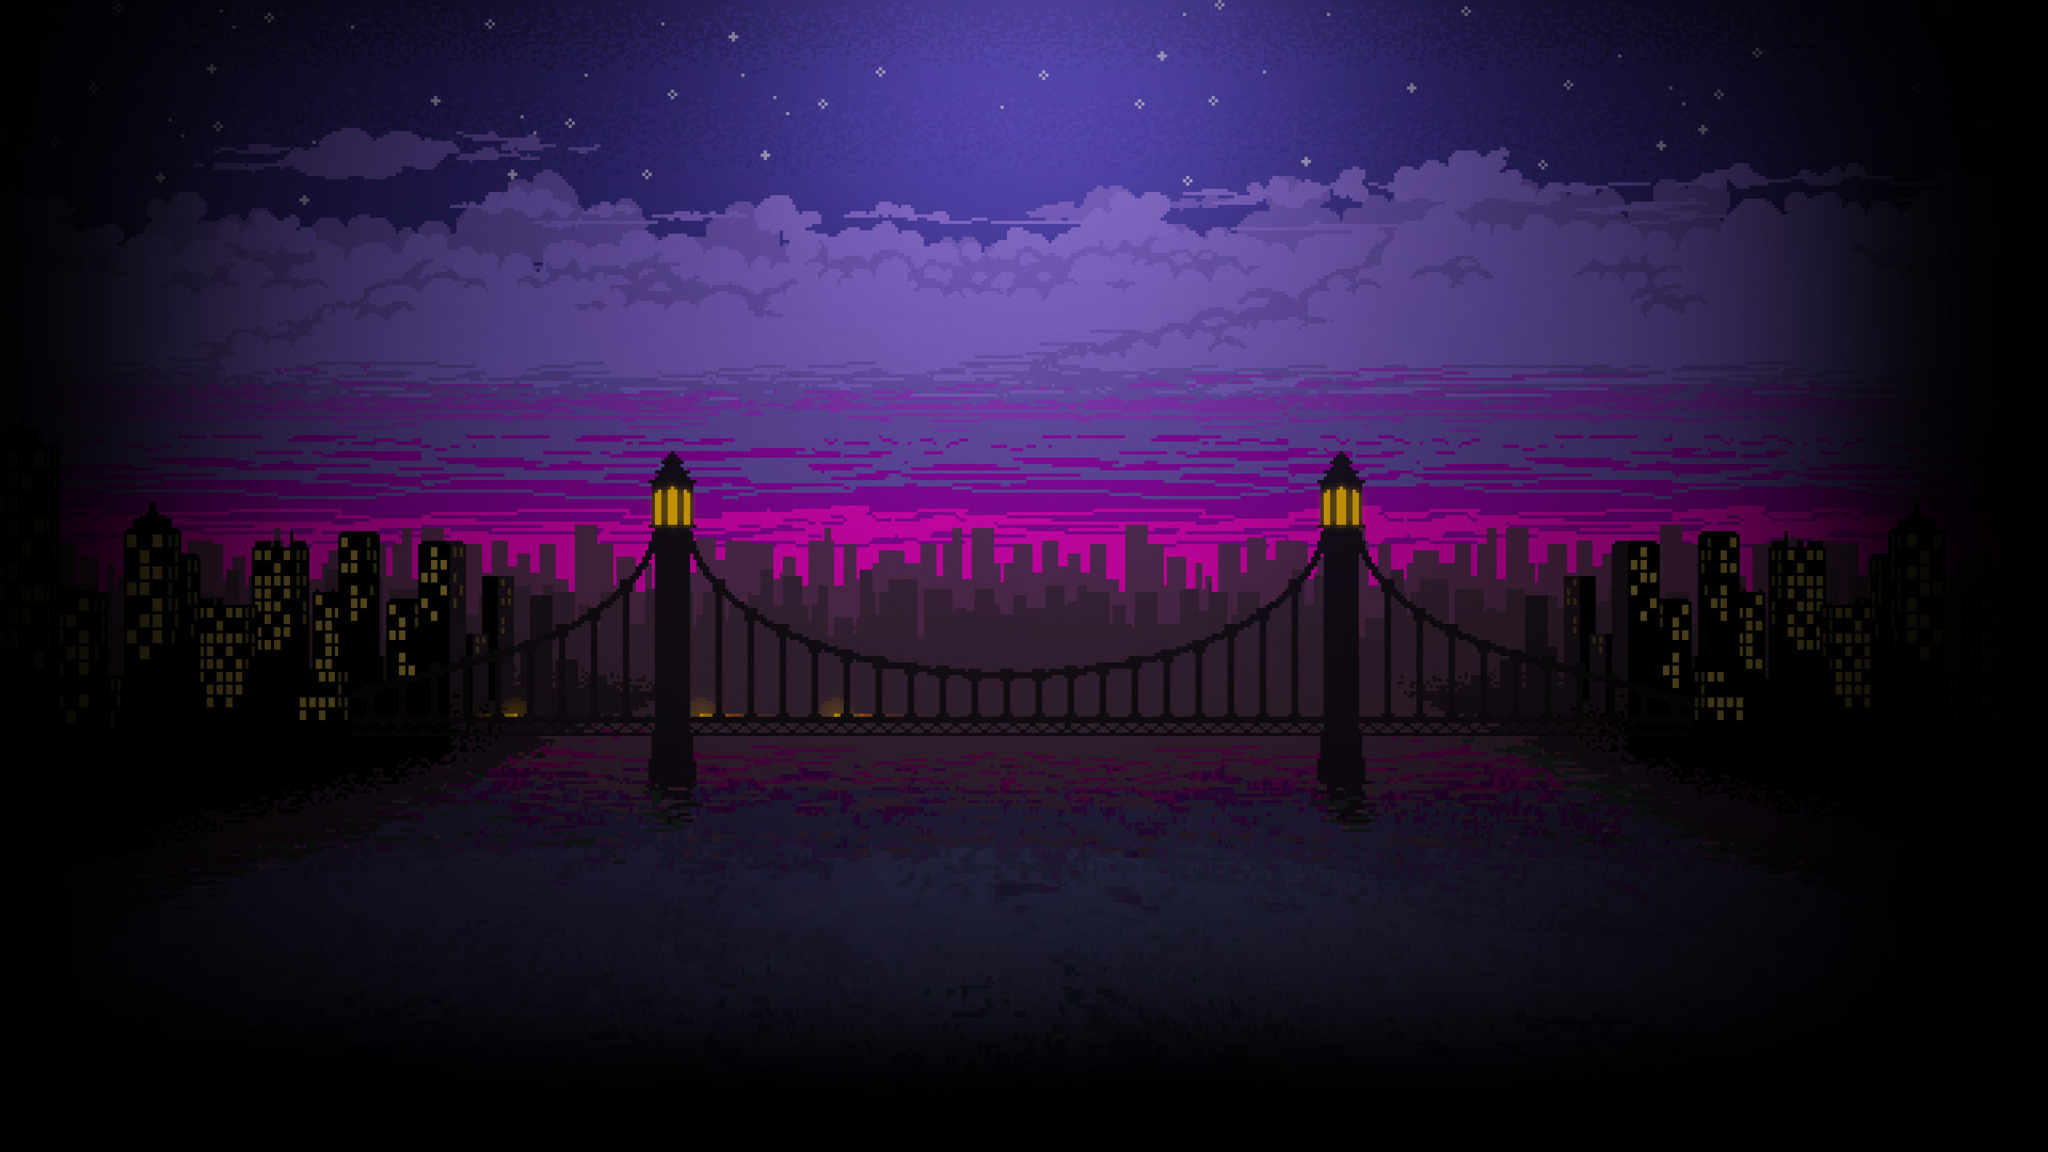 2048x1152 Pixel Art Bridge Night 2048x1152 Resolution Hd 4k